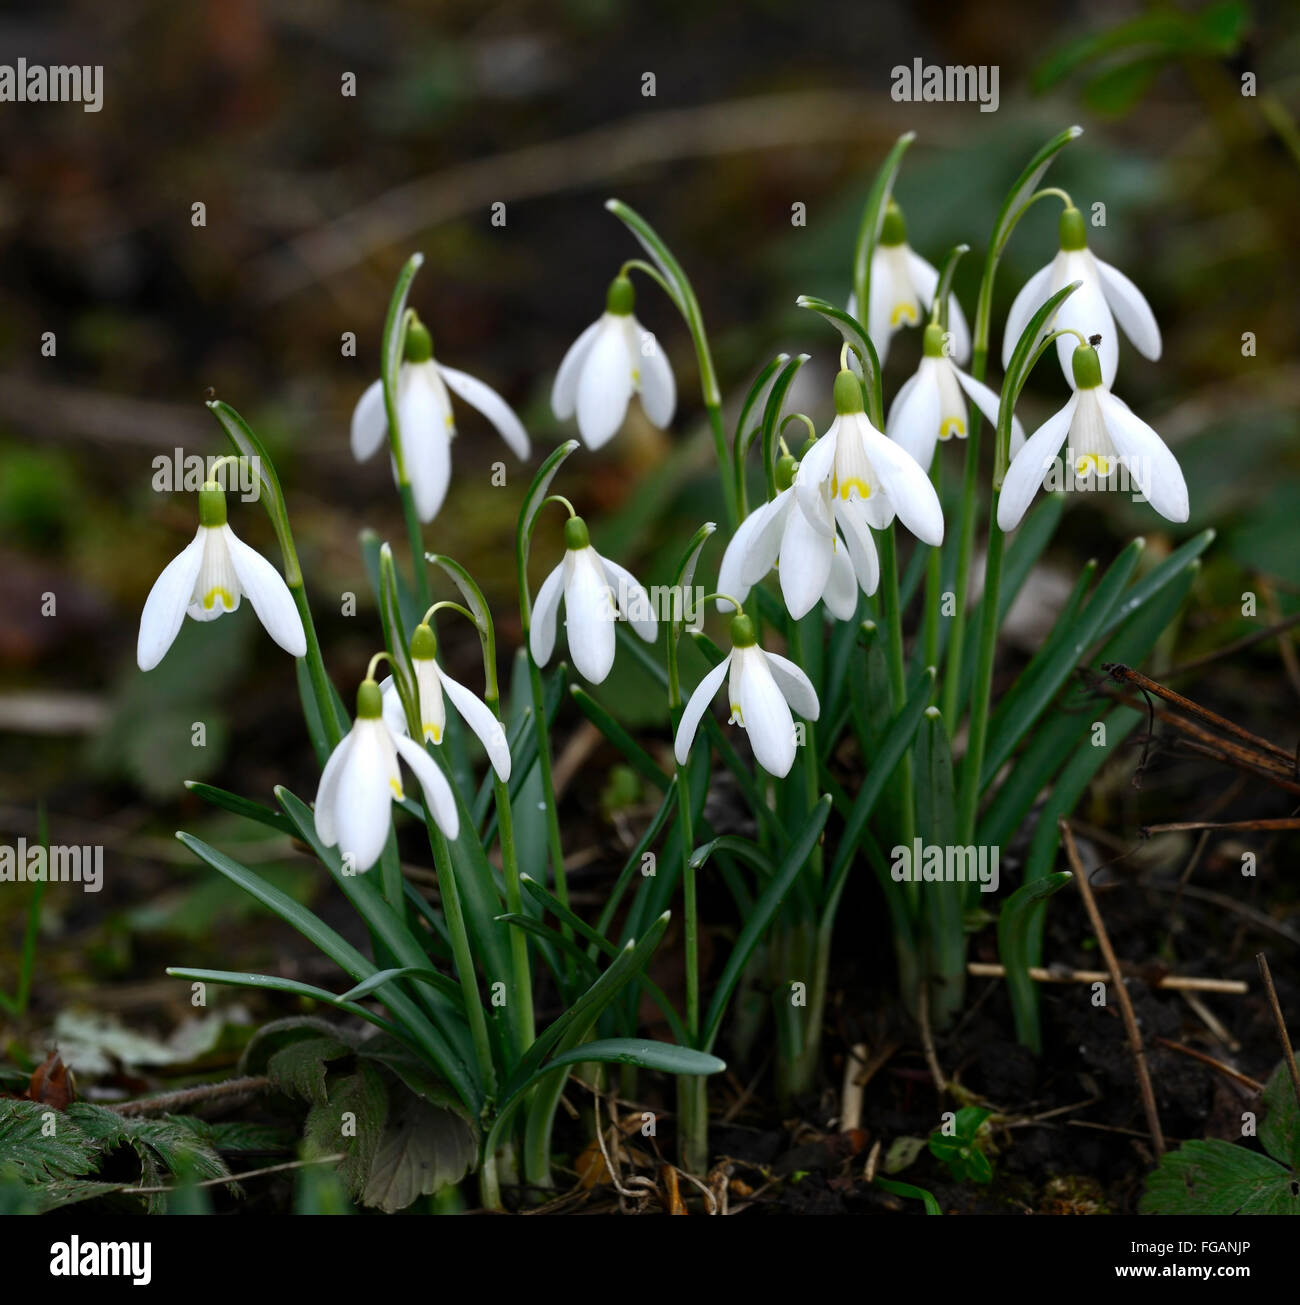 Galanthus Nivalis Blonde Inge White Flower Flowers Yellow Markings